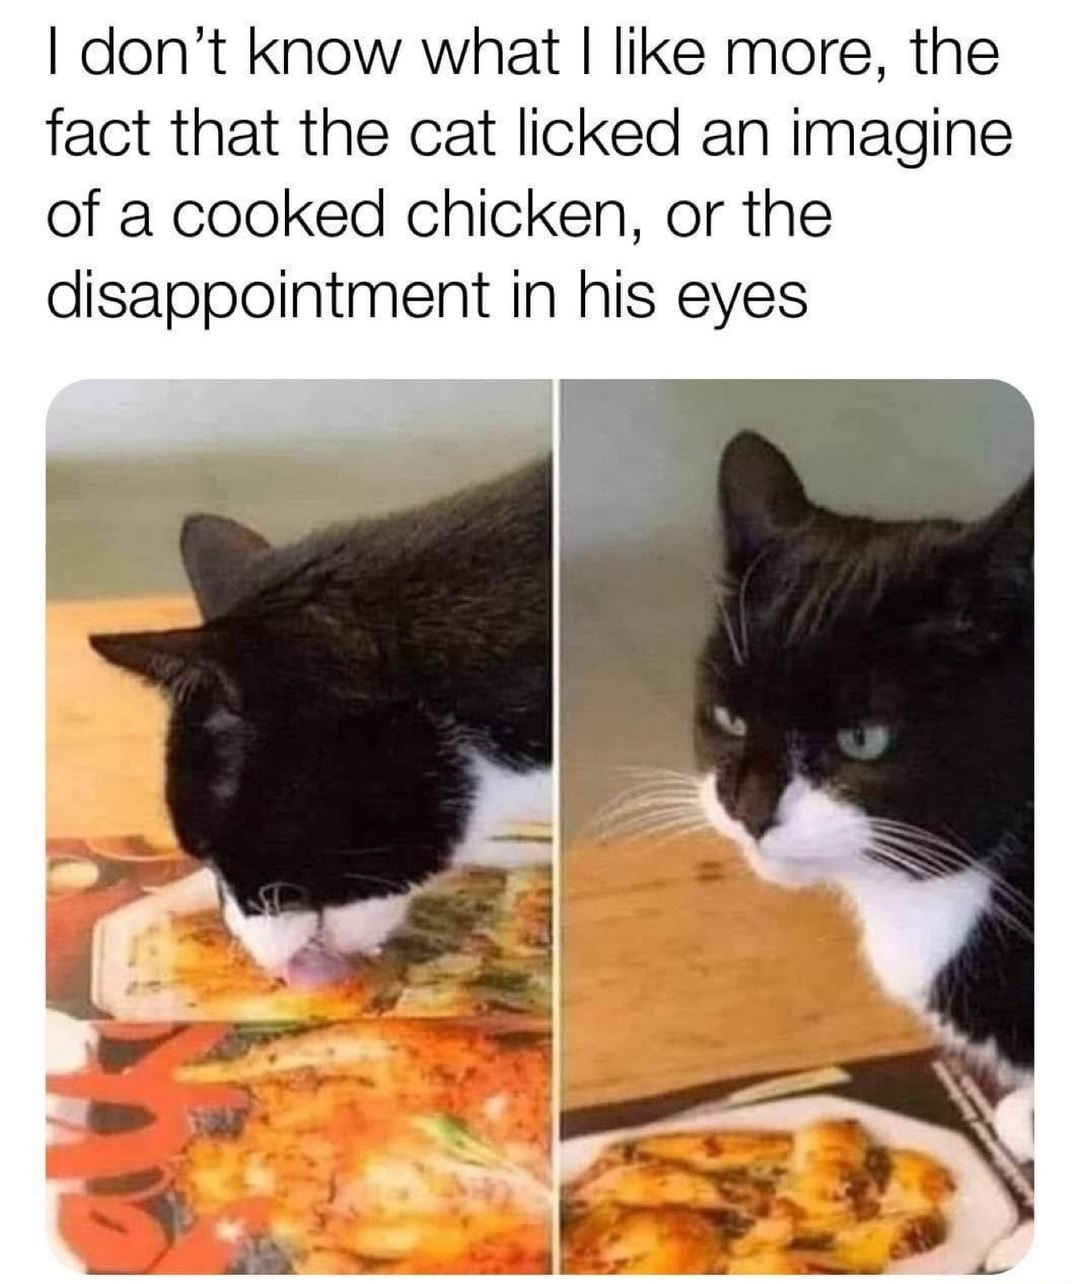 The disappointment is the cats eyes